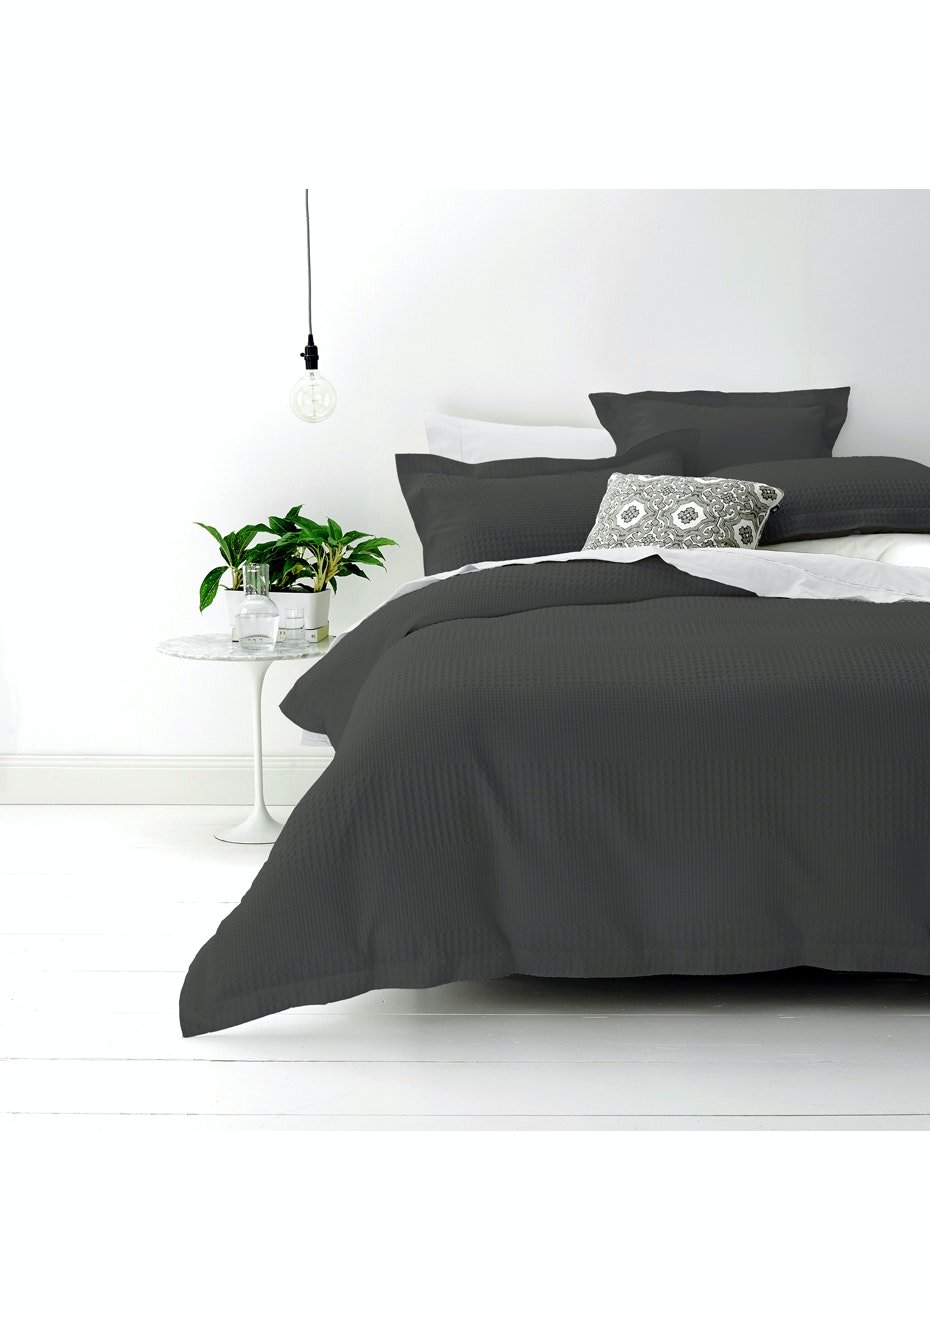 Style & Co 100 % Cotton Jacquard Waffle Quilt Cover set Super King Bed Granite